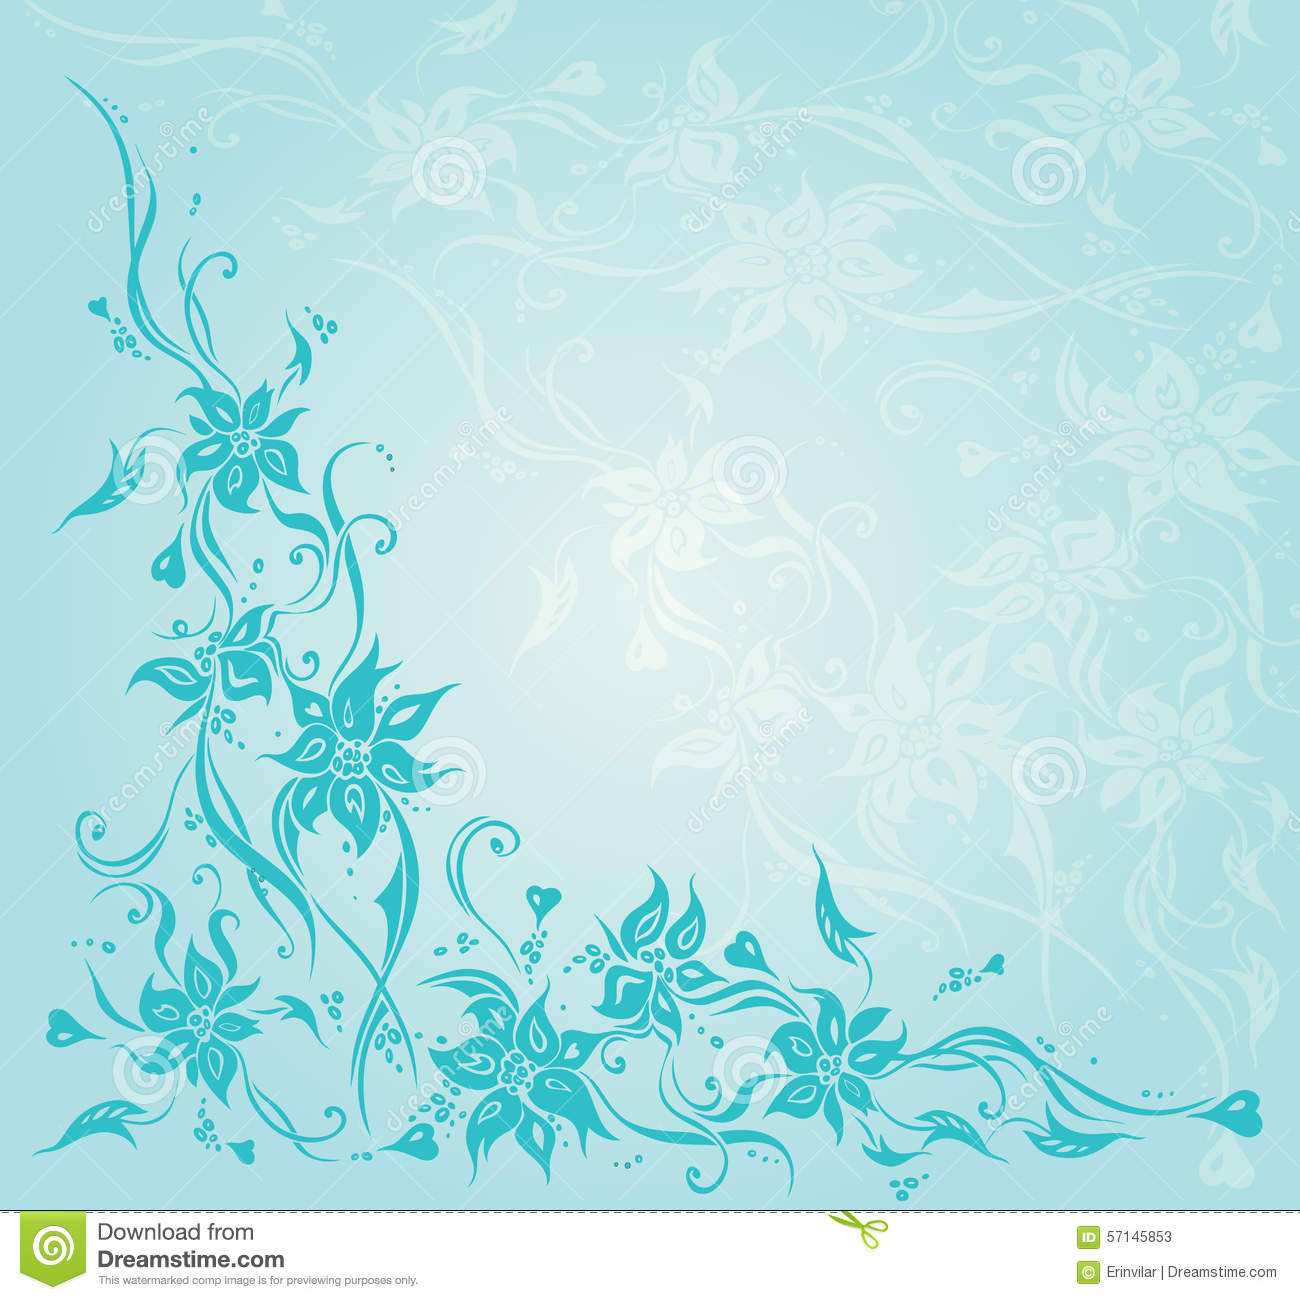 Turquoise Vintage Floral Invitation Wedding Background Design ...